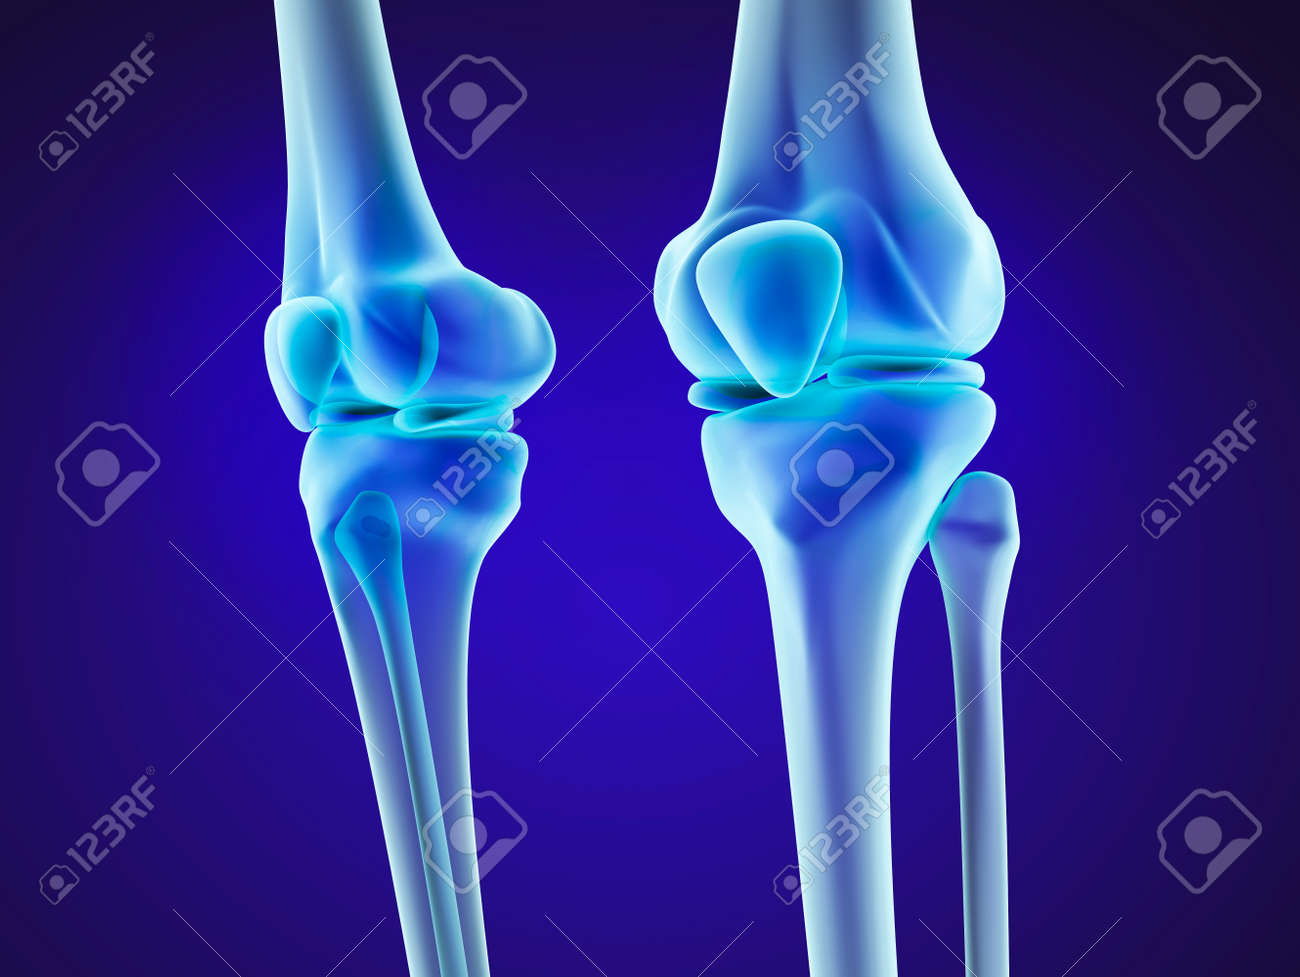 Knee Anatomy Xray View Medically Accurate 3d Illustration Stock